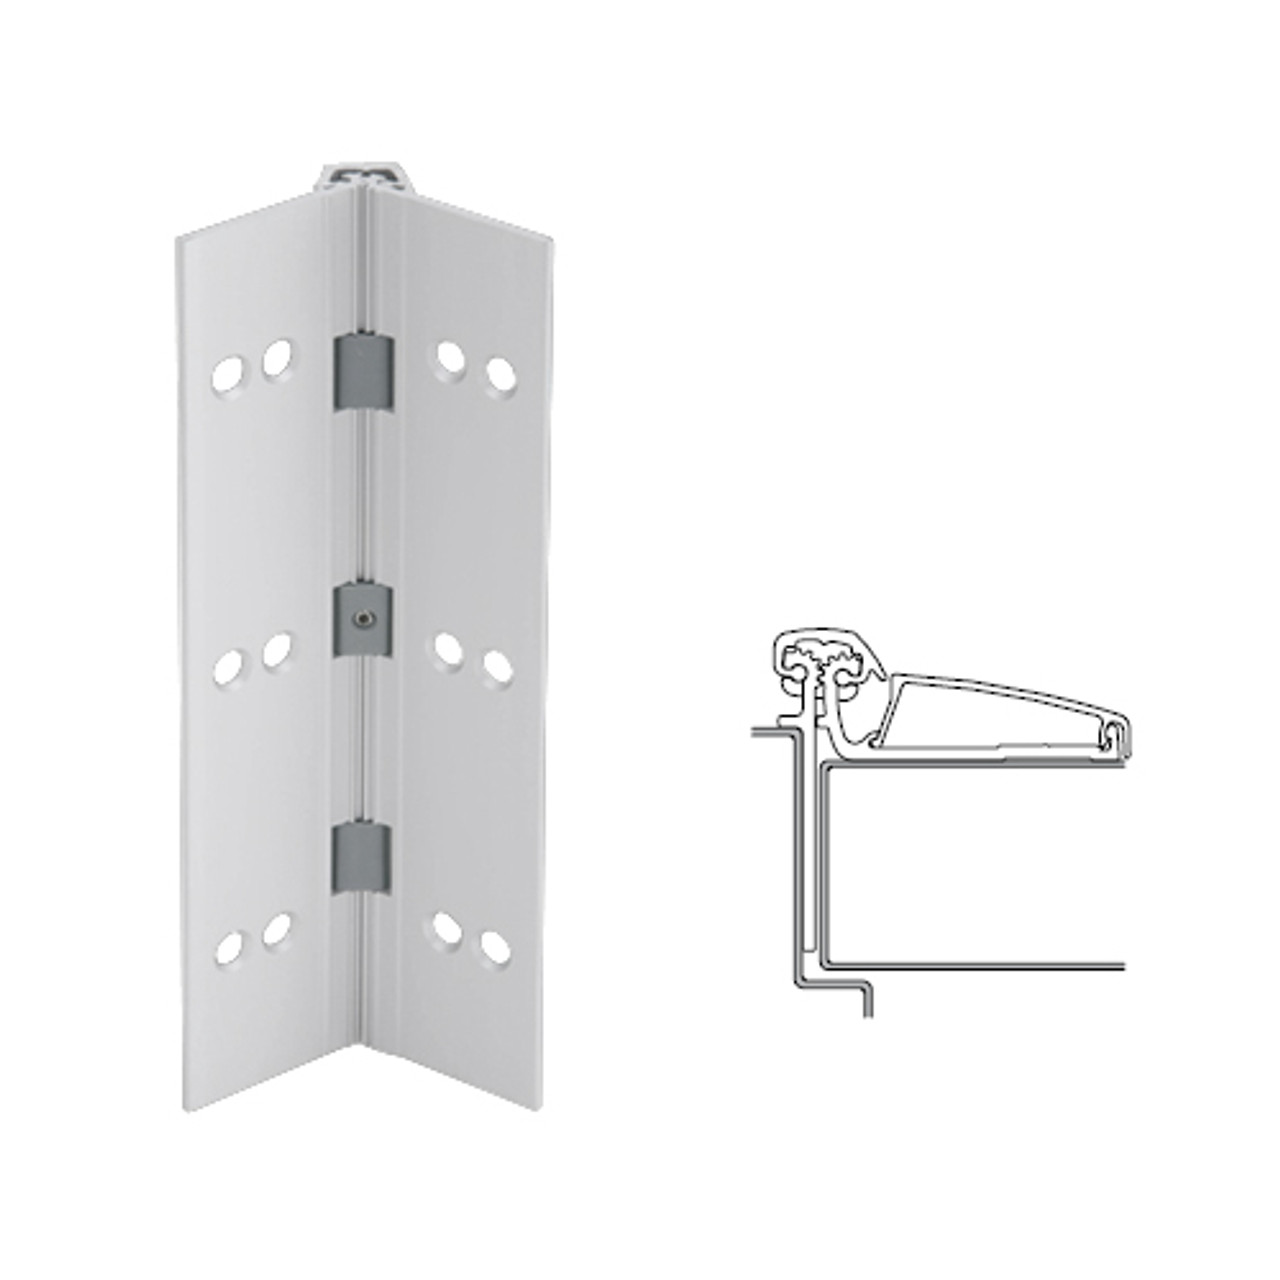 046XY-US28-85-WD IVES Adjustable Half Surface Continuous Geared Hinges with Wood Screws in Satin Aluminum